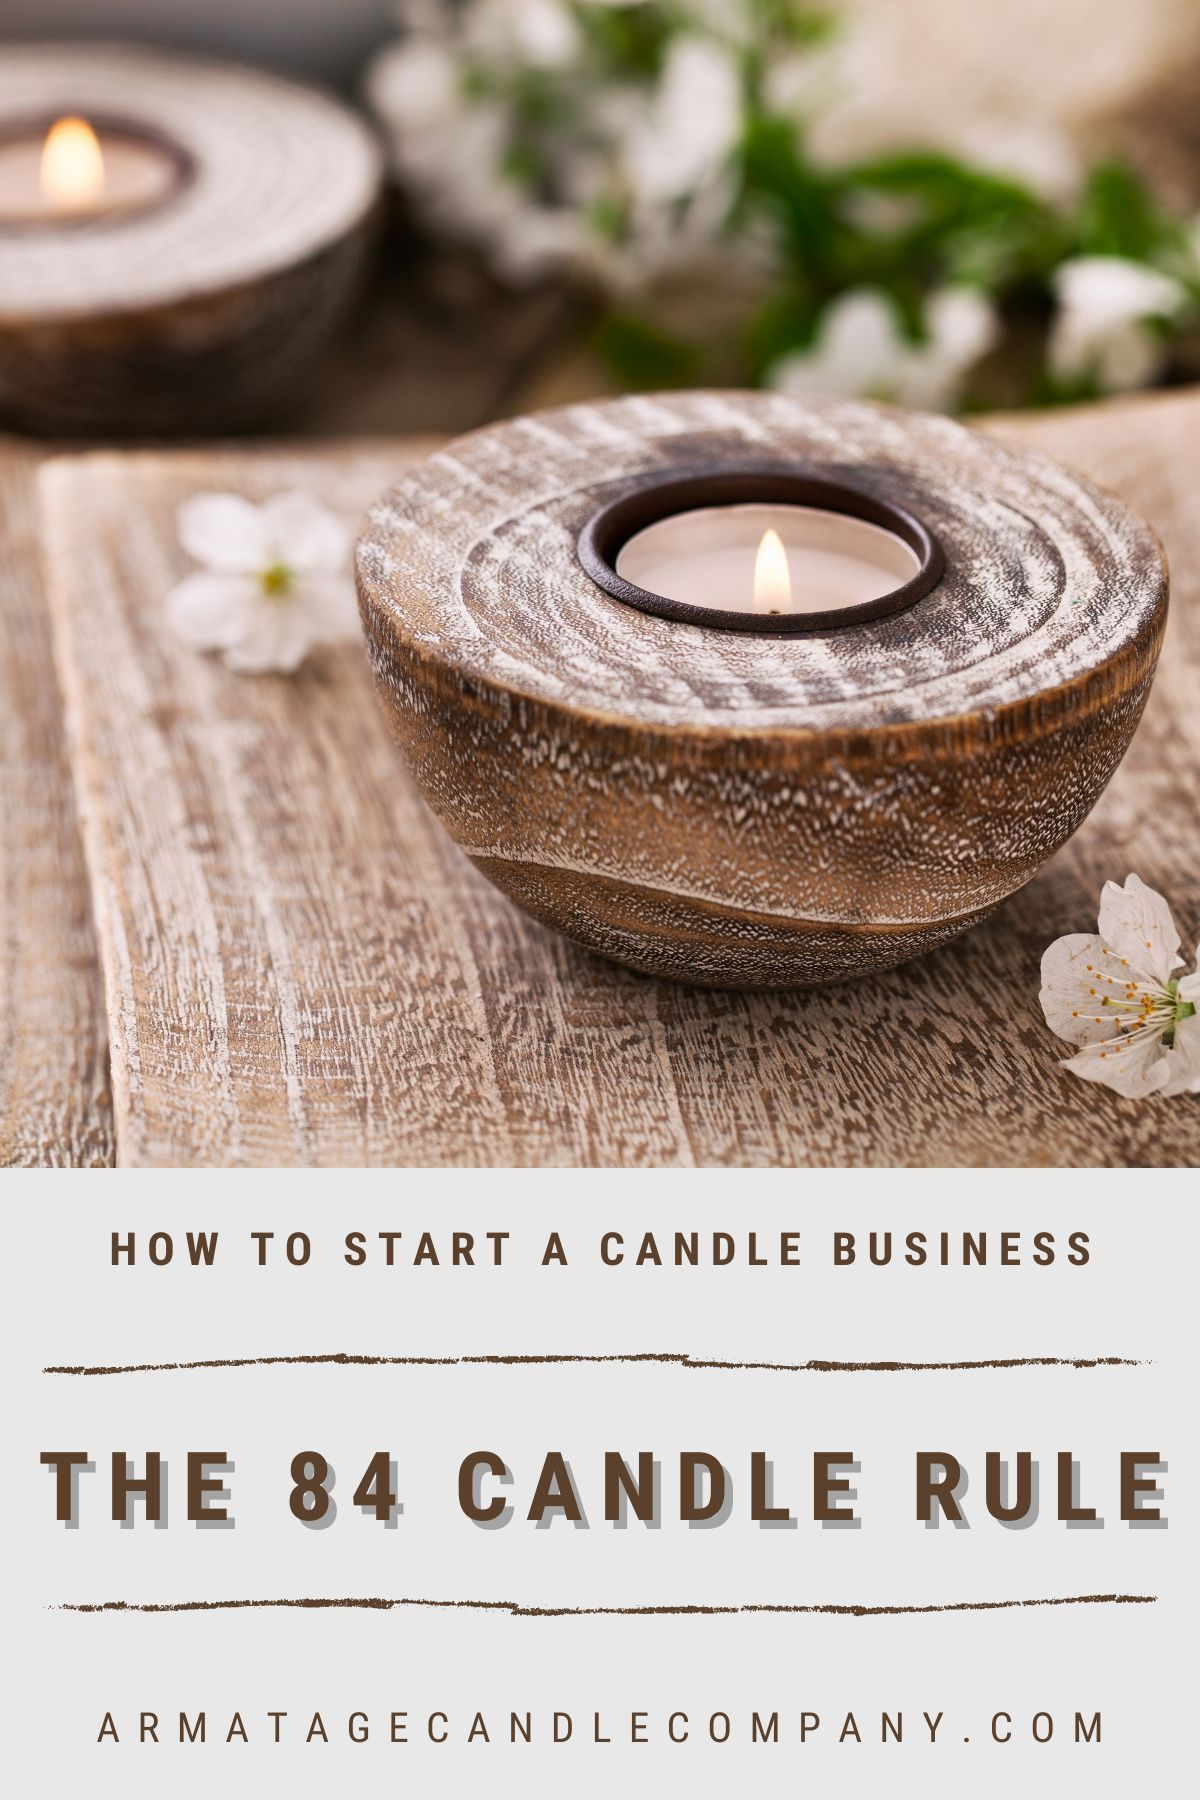 How To Start A Candle Business The 84 Candle Rule Candle Business Candle Making Business Candles